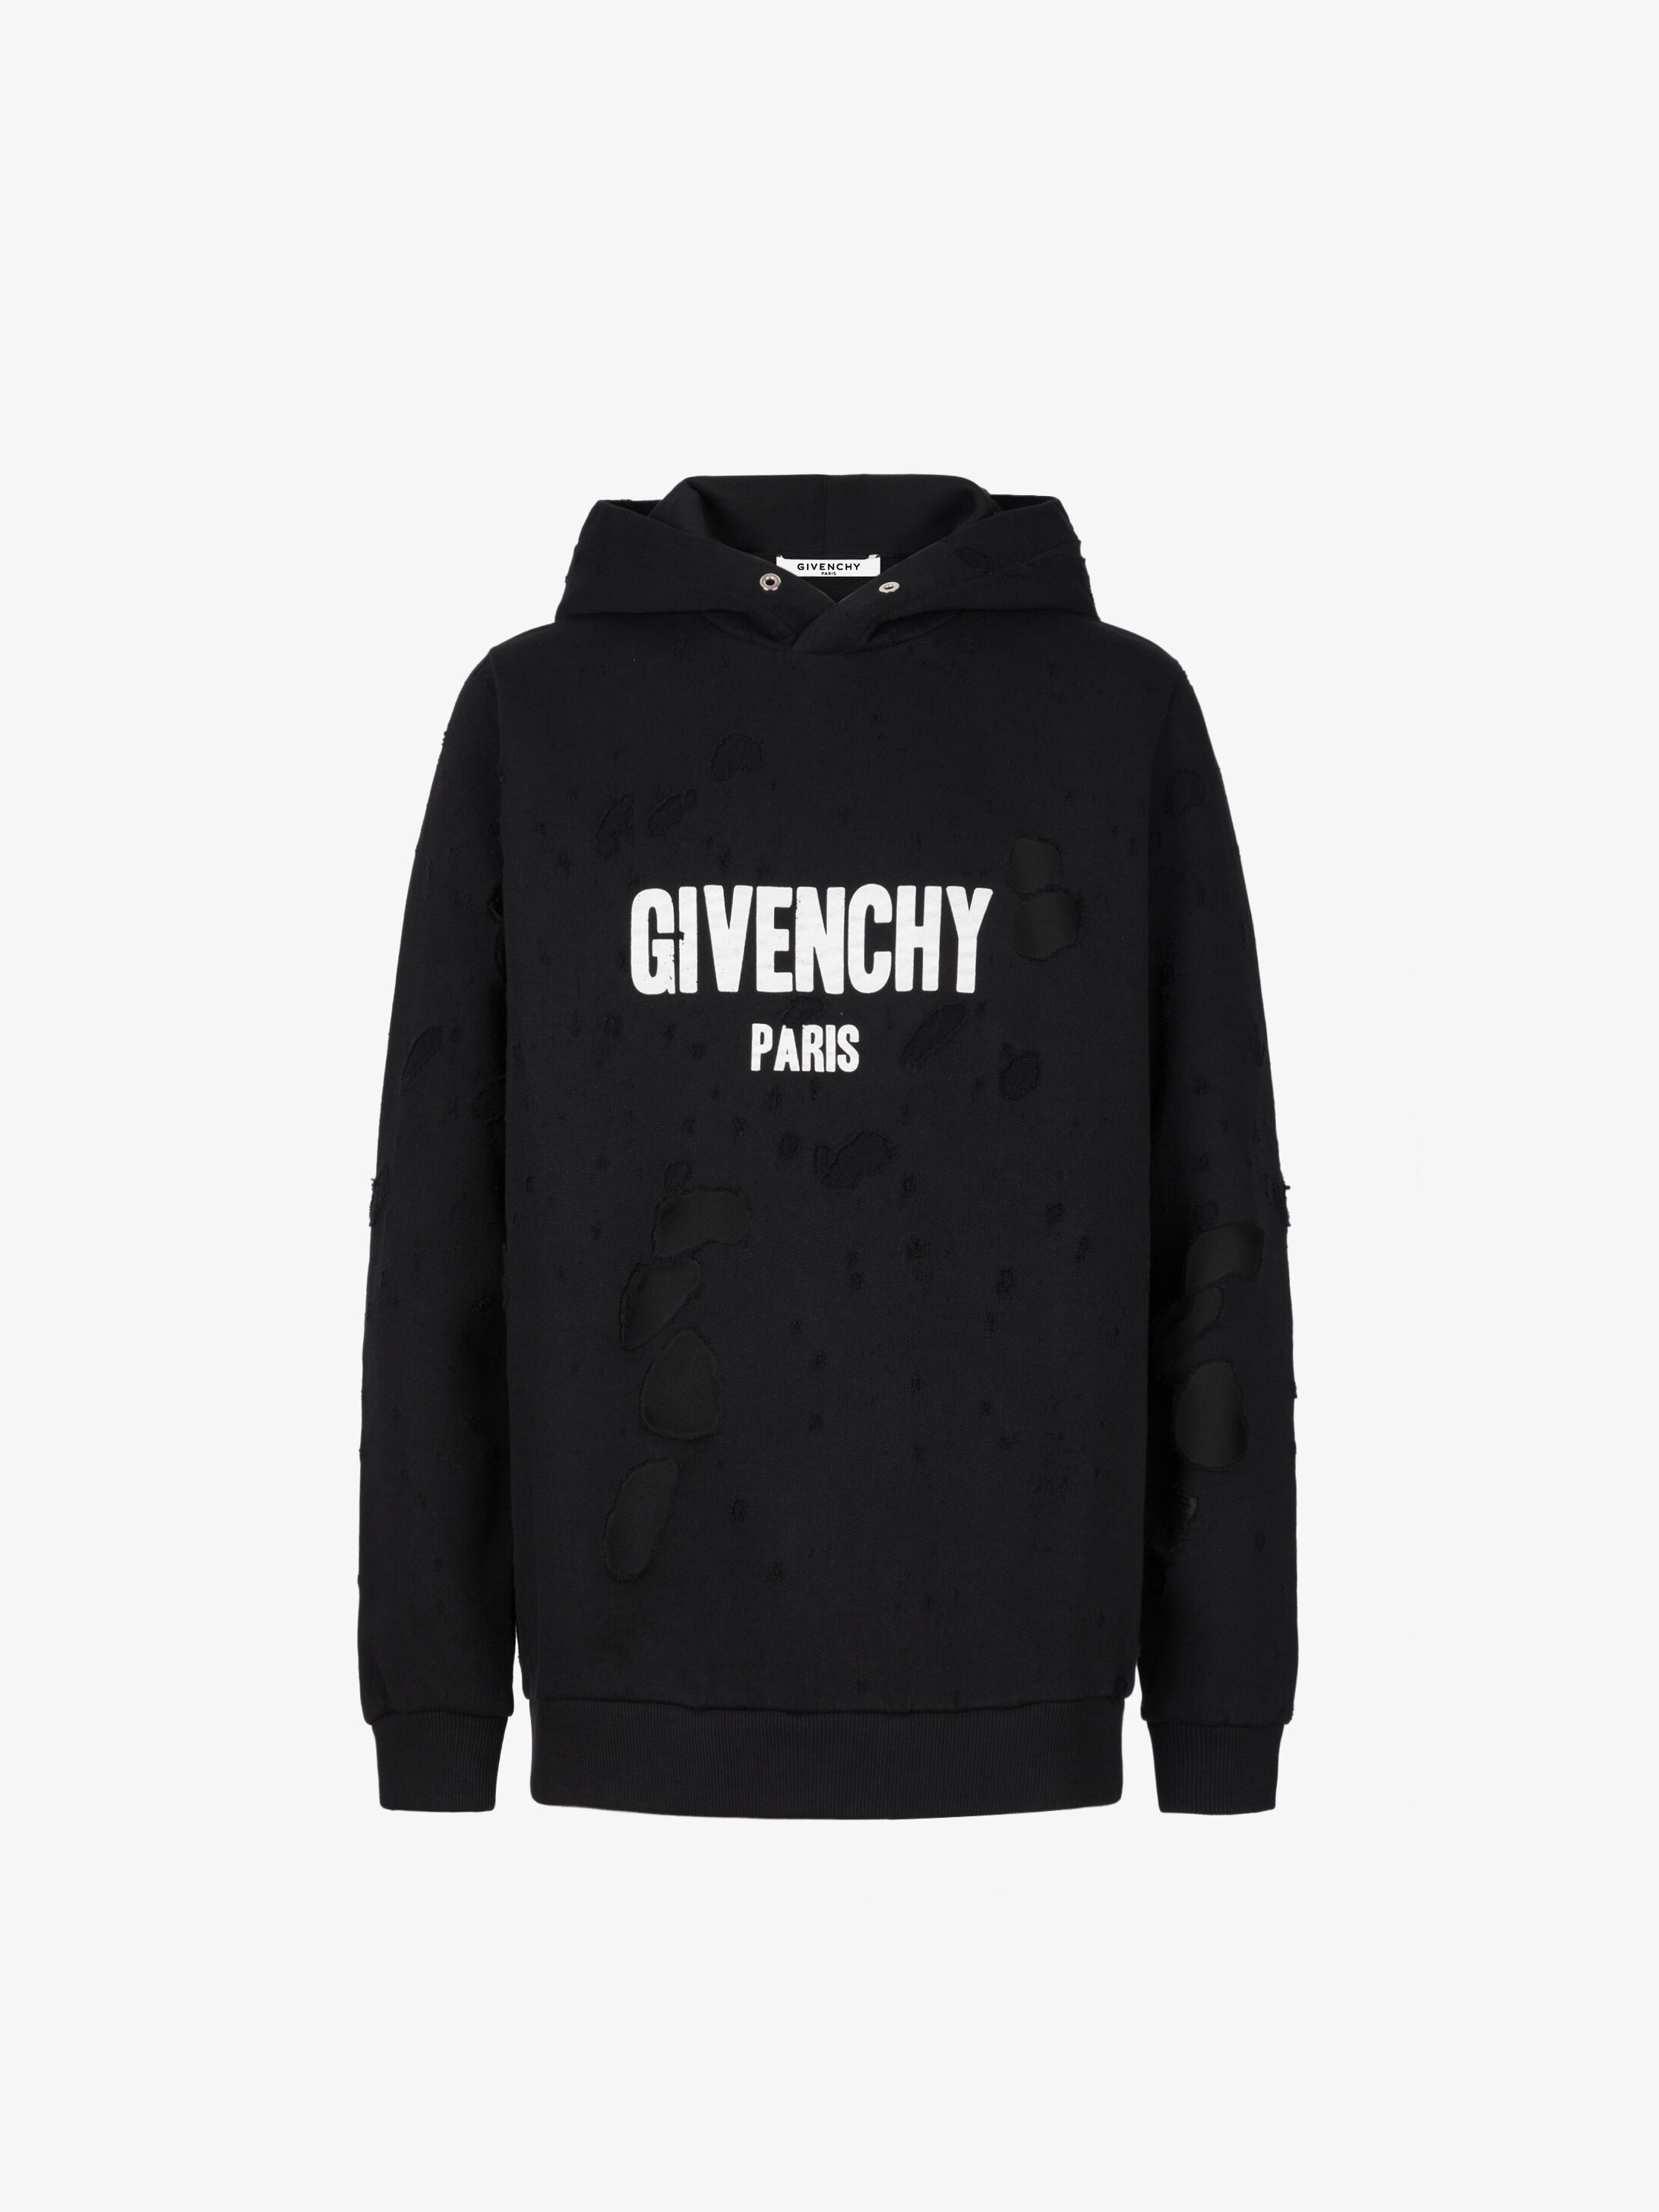 1ba8b312f9 Men's Sweatshirts collection by Givenchy. | GIVENCHY Paris